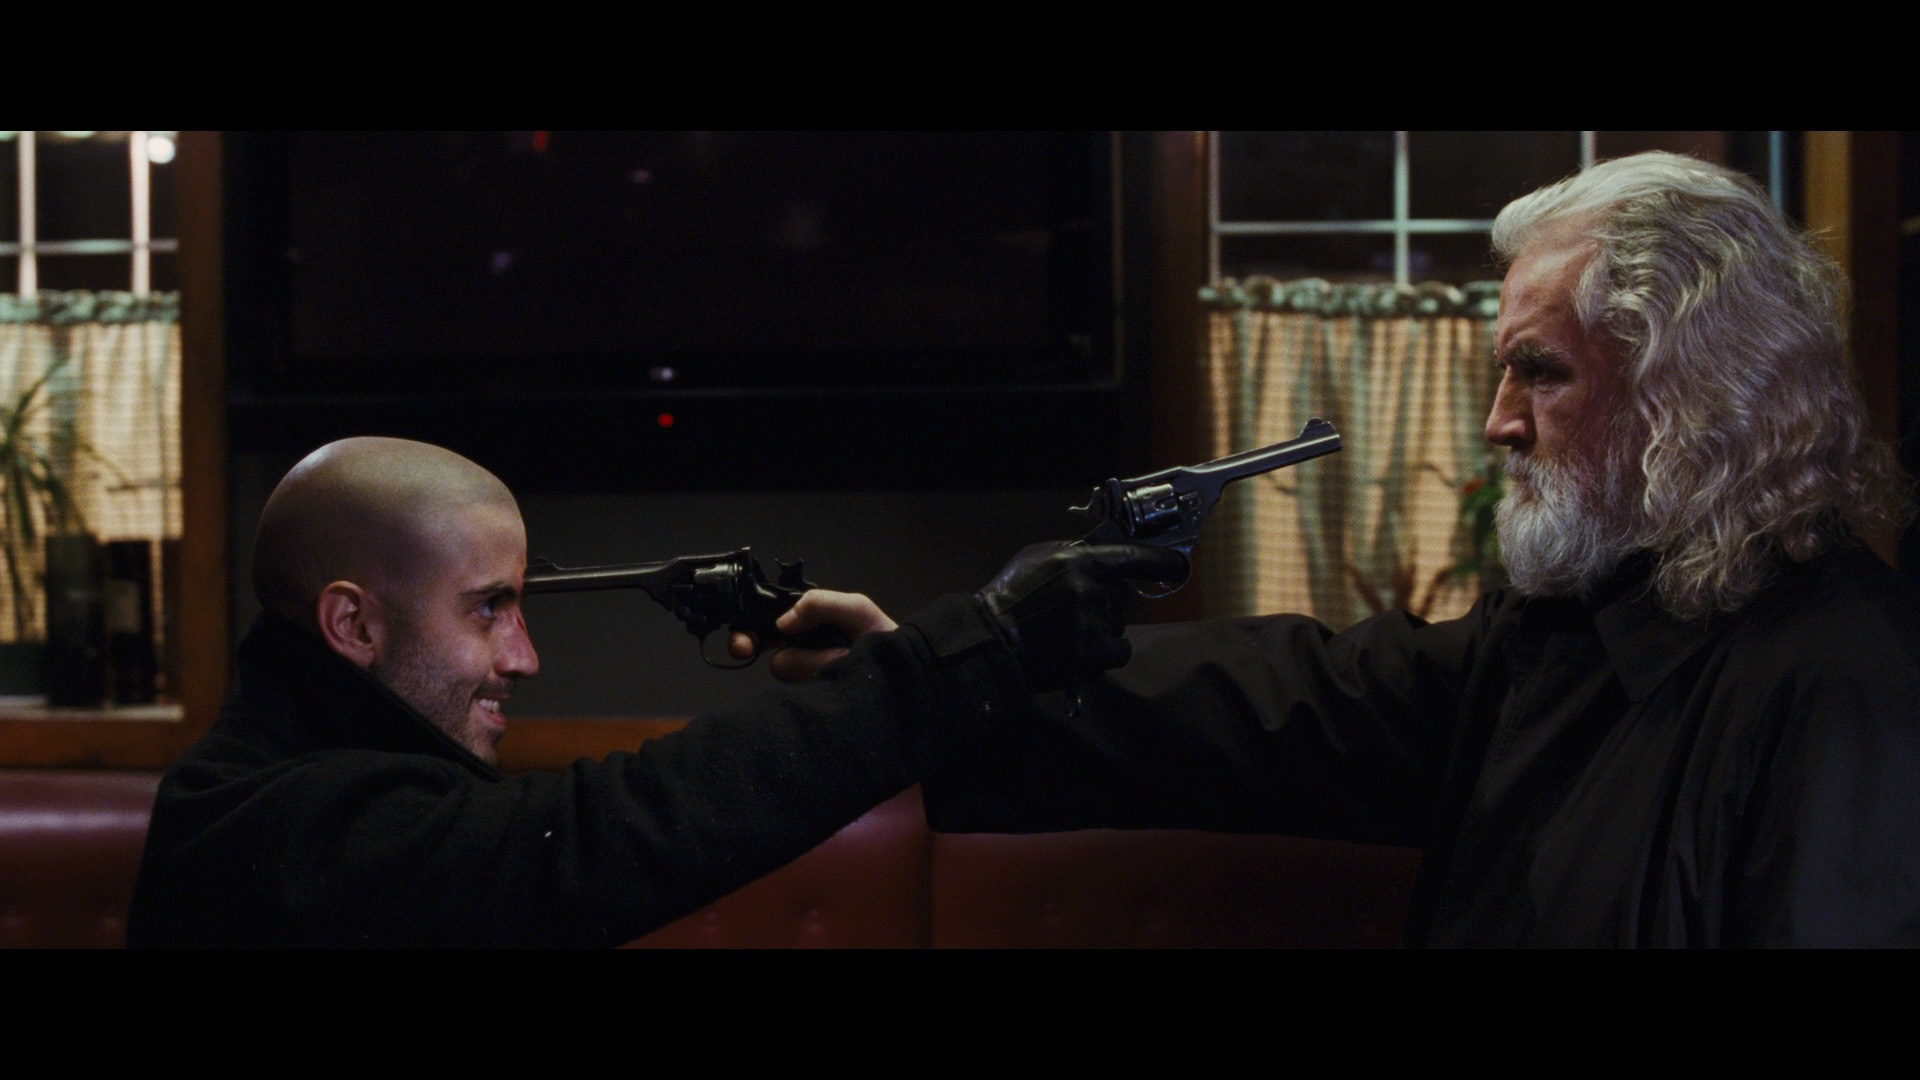 If you enjoy movies where people point guns at each other, BOOM!  All Saint's Day  has got you covered.